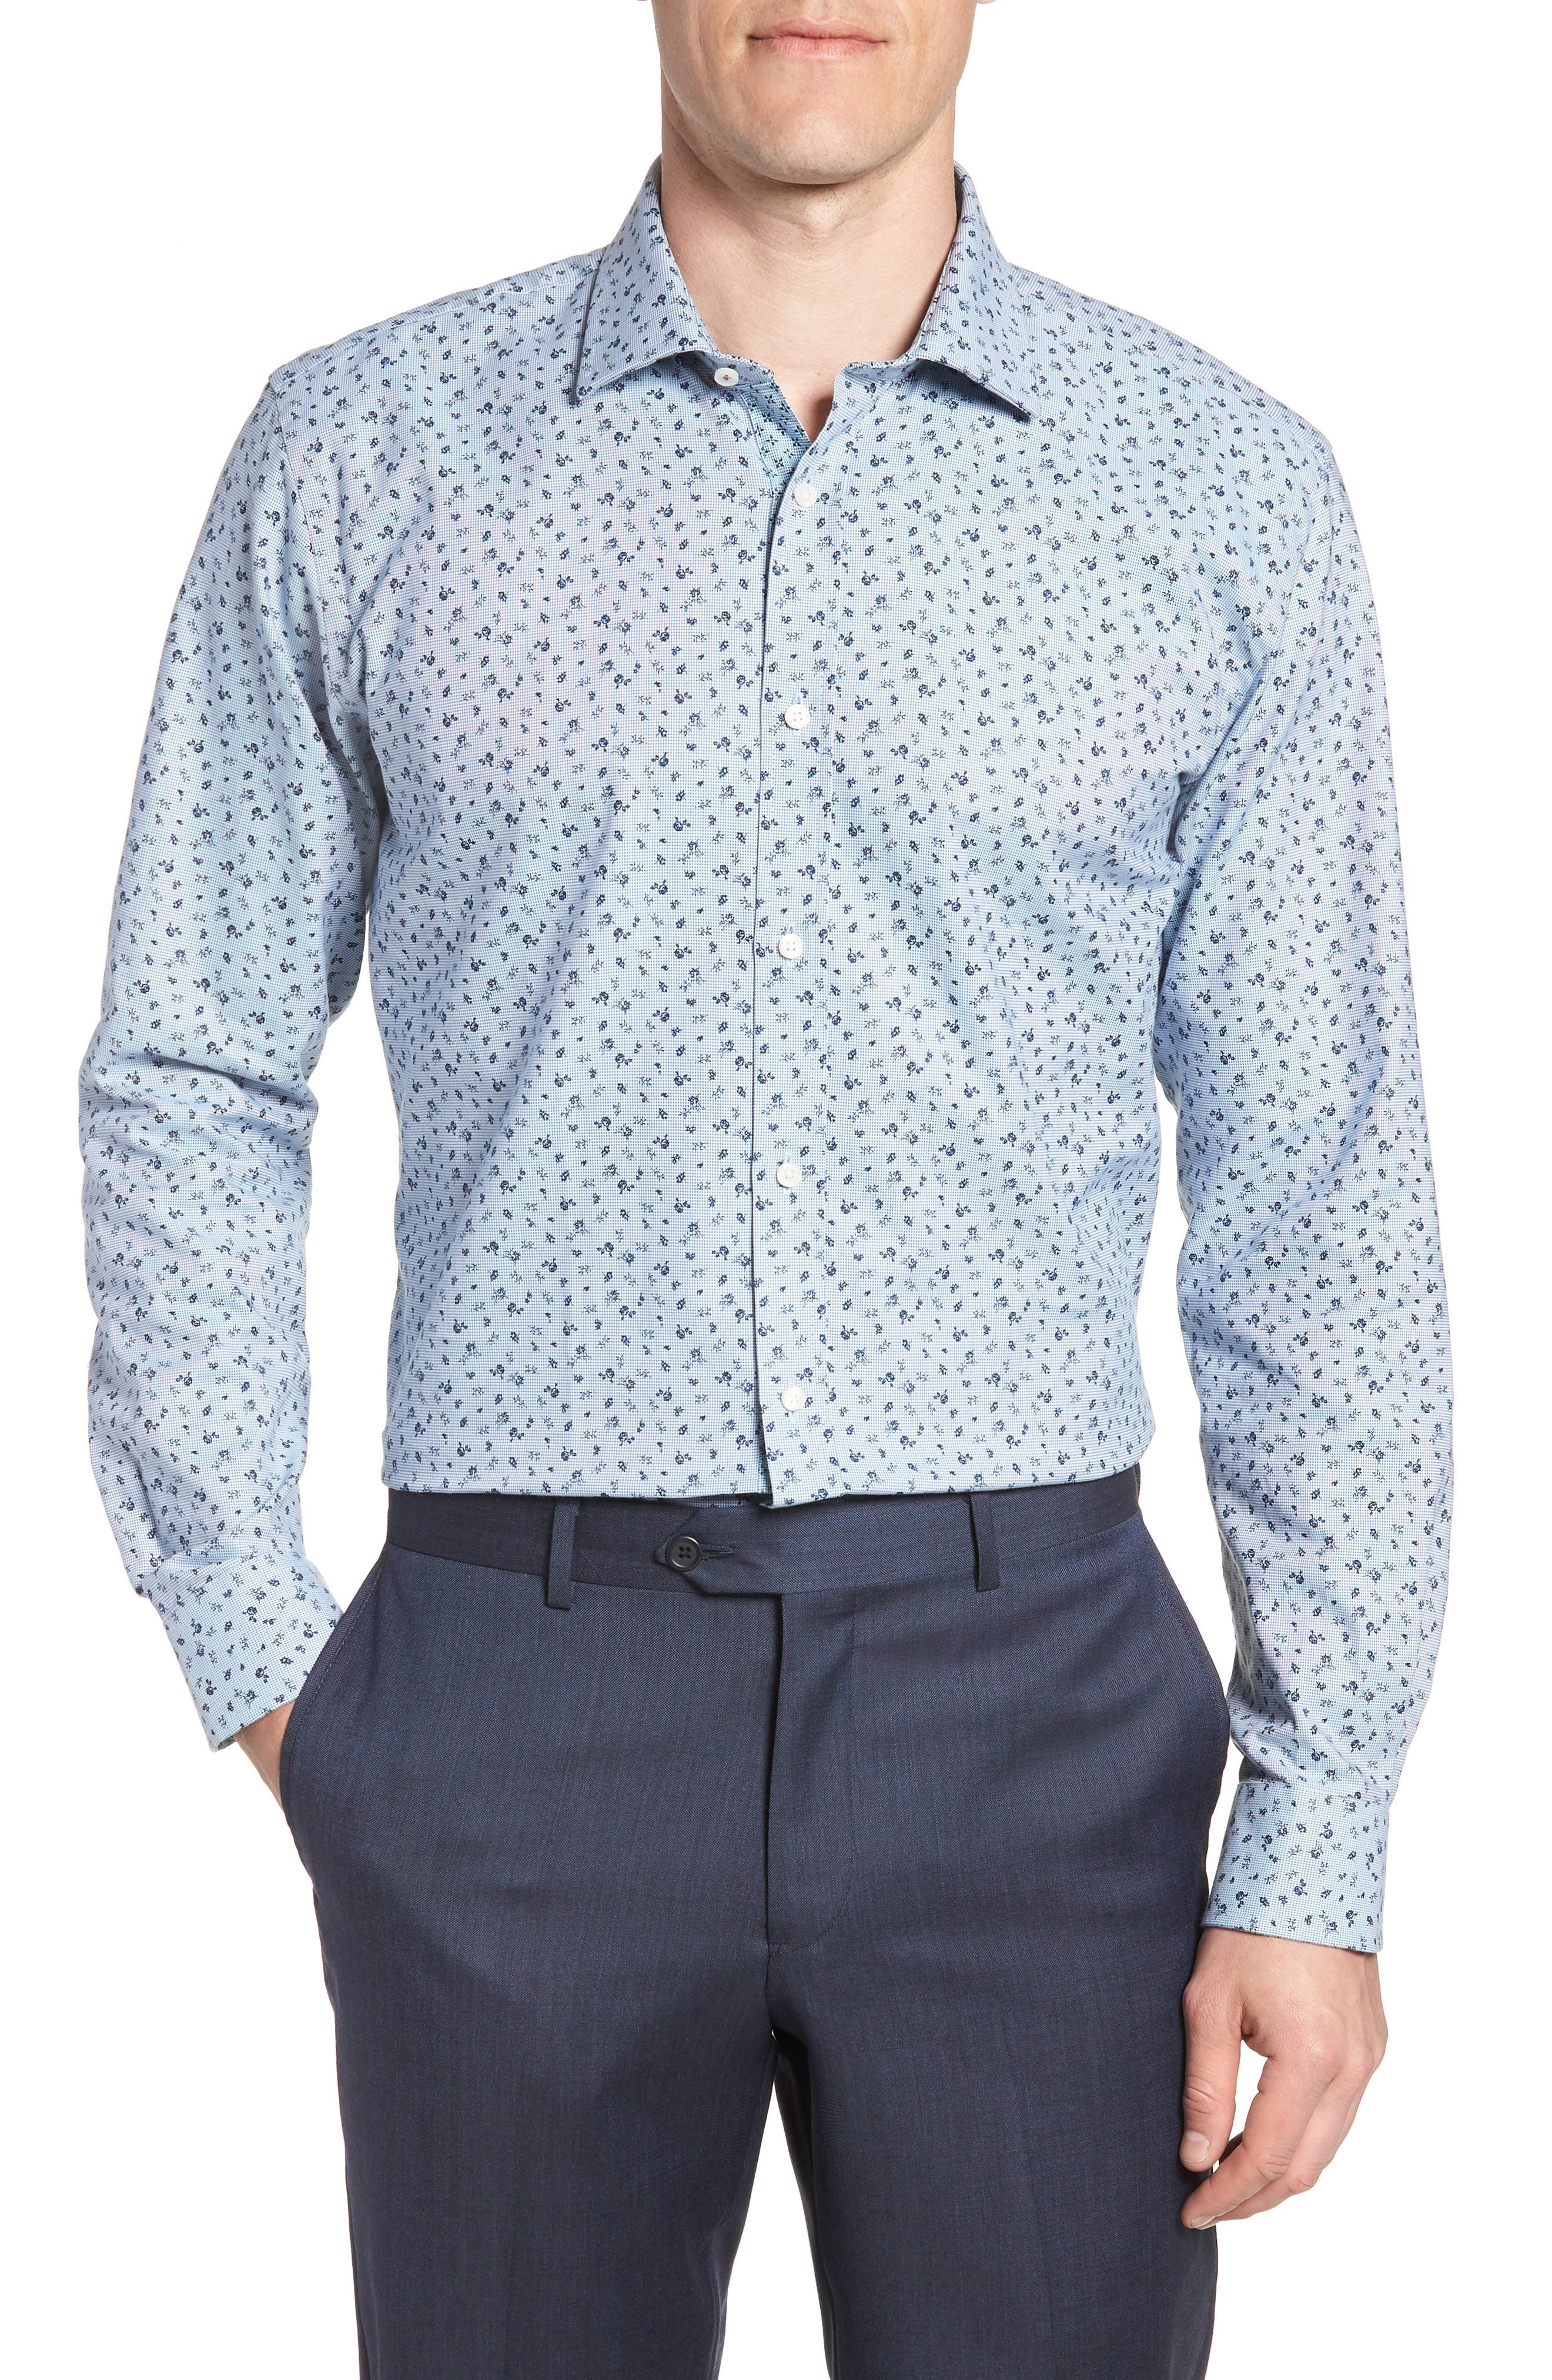 Chardo Trim Fit Floral Dress Shirt,                         Main,                         color, 030